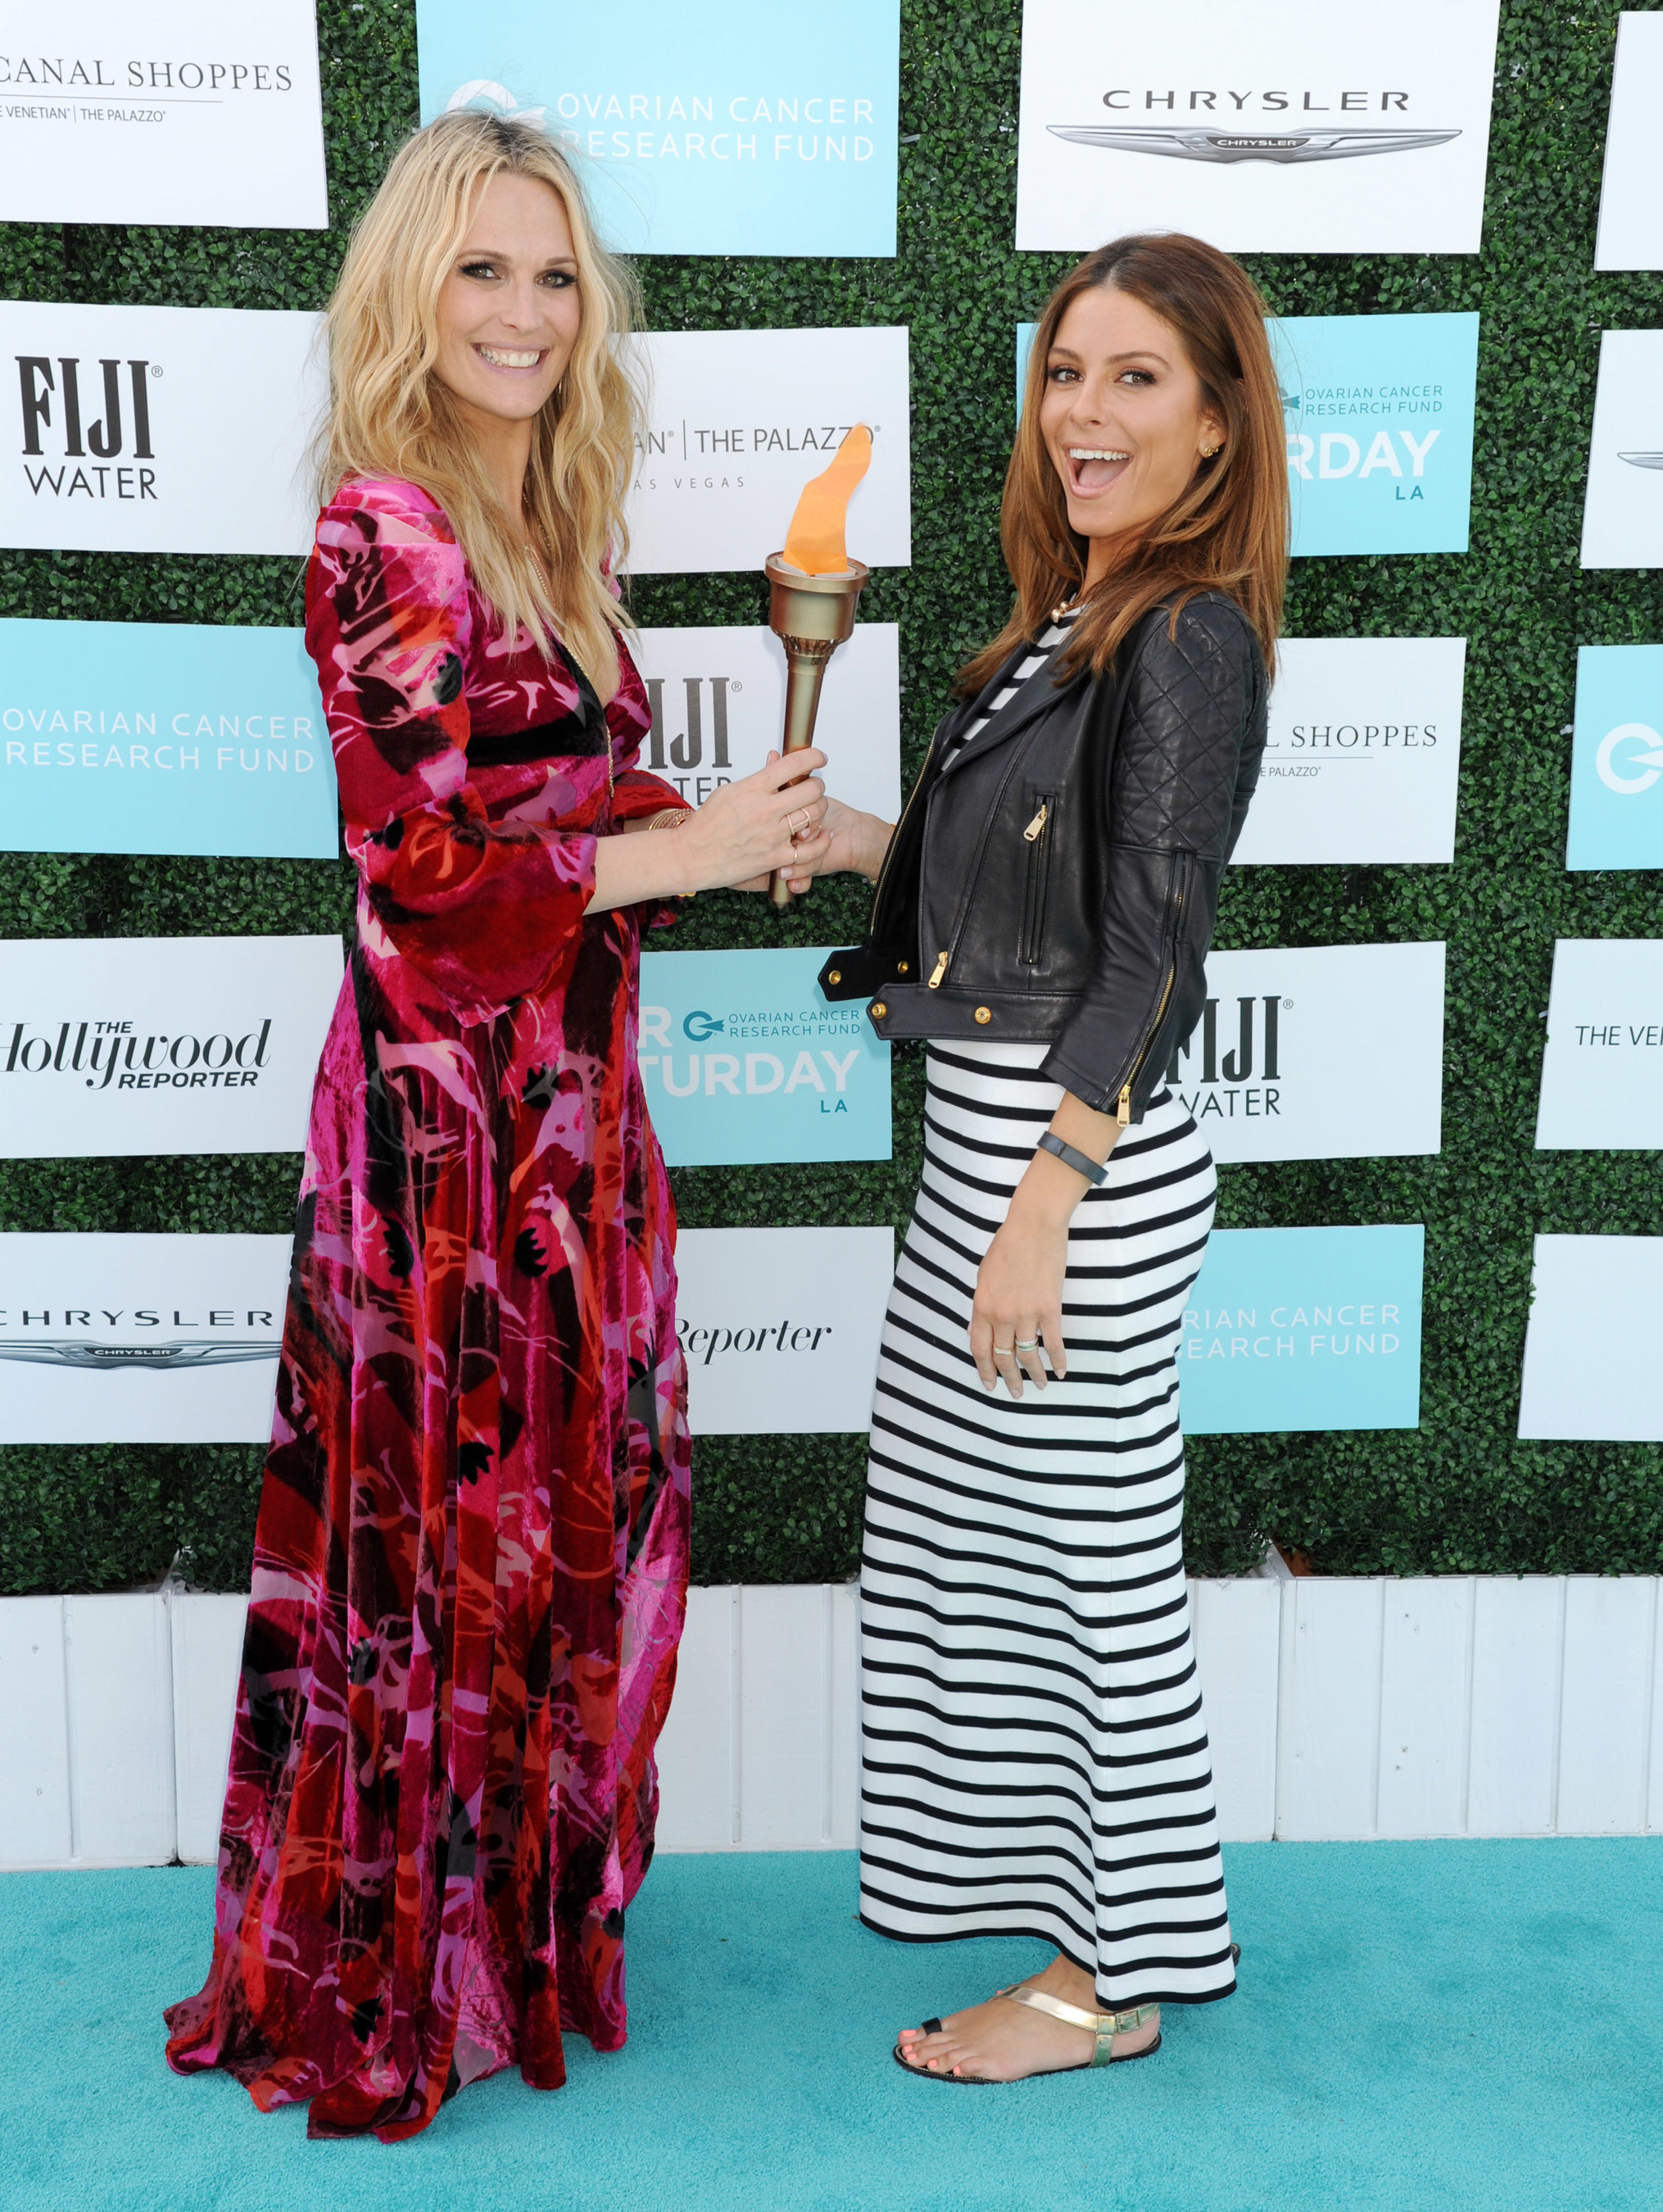 Molly Sims, host of Super Saturday LA passes the torch to Maria Menounos for Ovarian Cancer Research Fund's Super Saturday as it heads to Grand Canal Shoppes at The Venetian and The Palazzo in Las Vegas